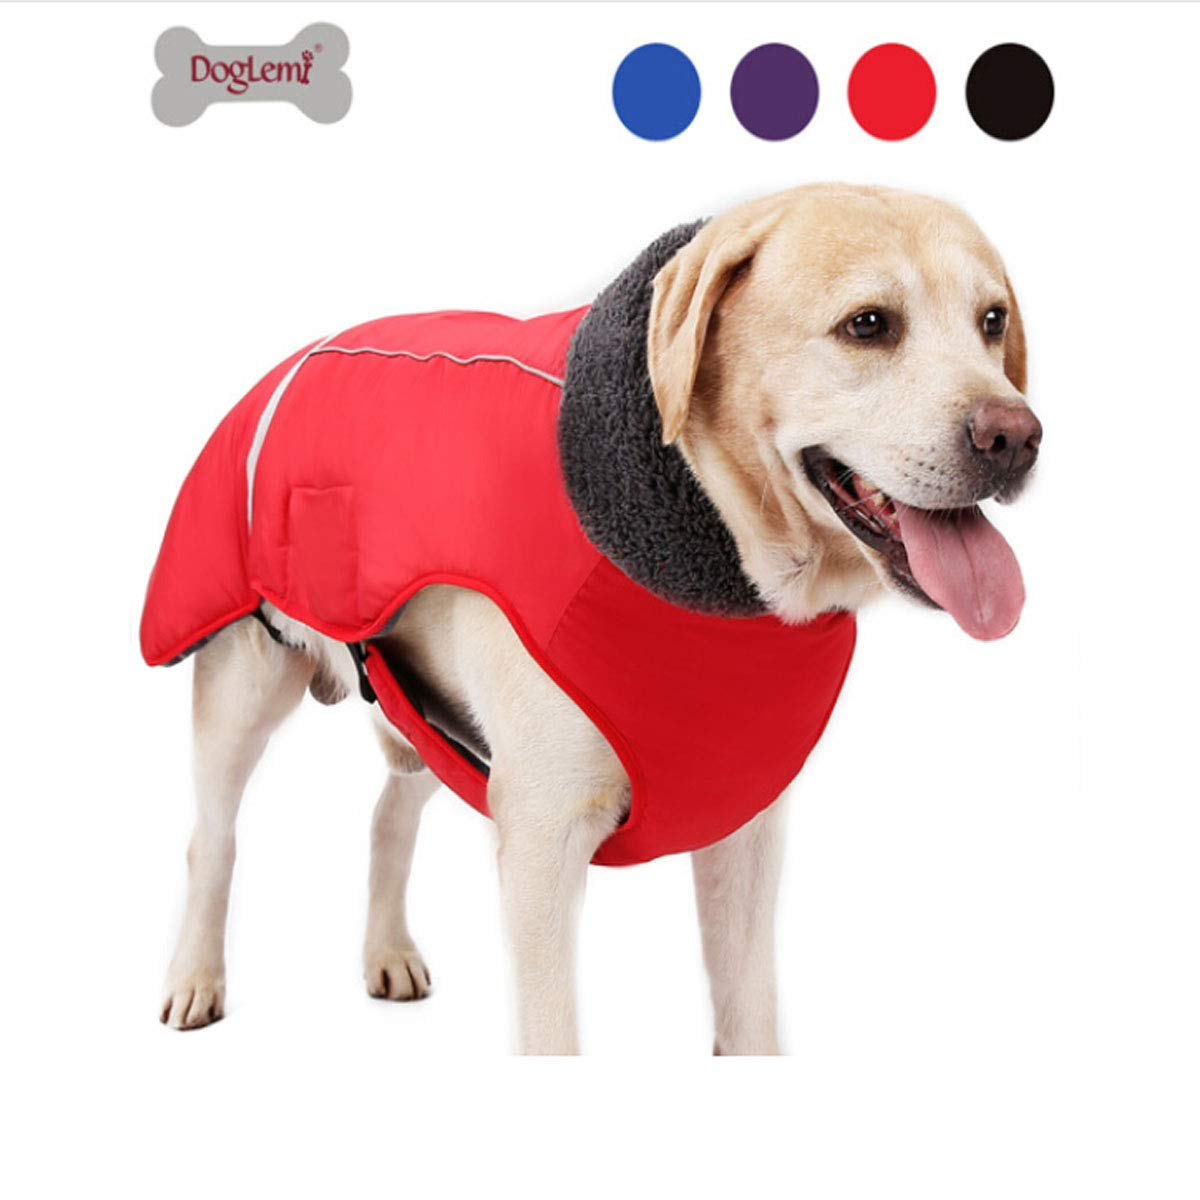 Red S Red S Huijunwenti Third-Generation Dog Buckle Clothes, Pet Thick Winter Jacket Vest, Big Dog Splash-Proof, Reflective Warm Clothing, Black XXXL Fashion (color   Red, Size   S)